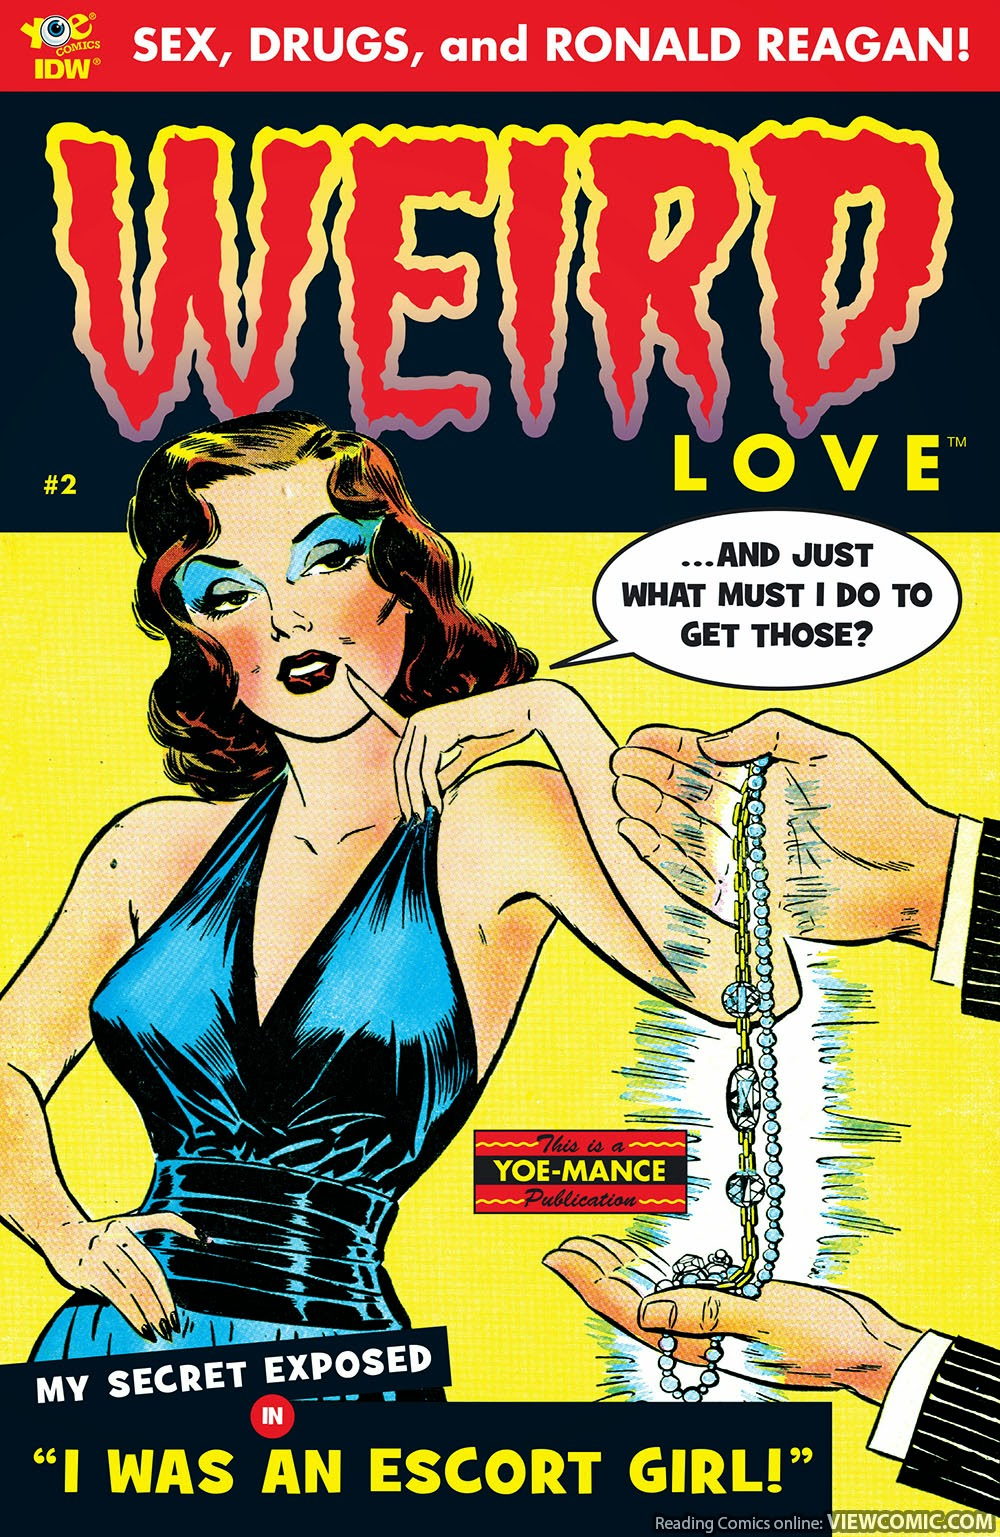 WEIRD Love | Viewcomic reading comics online for free 2019